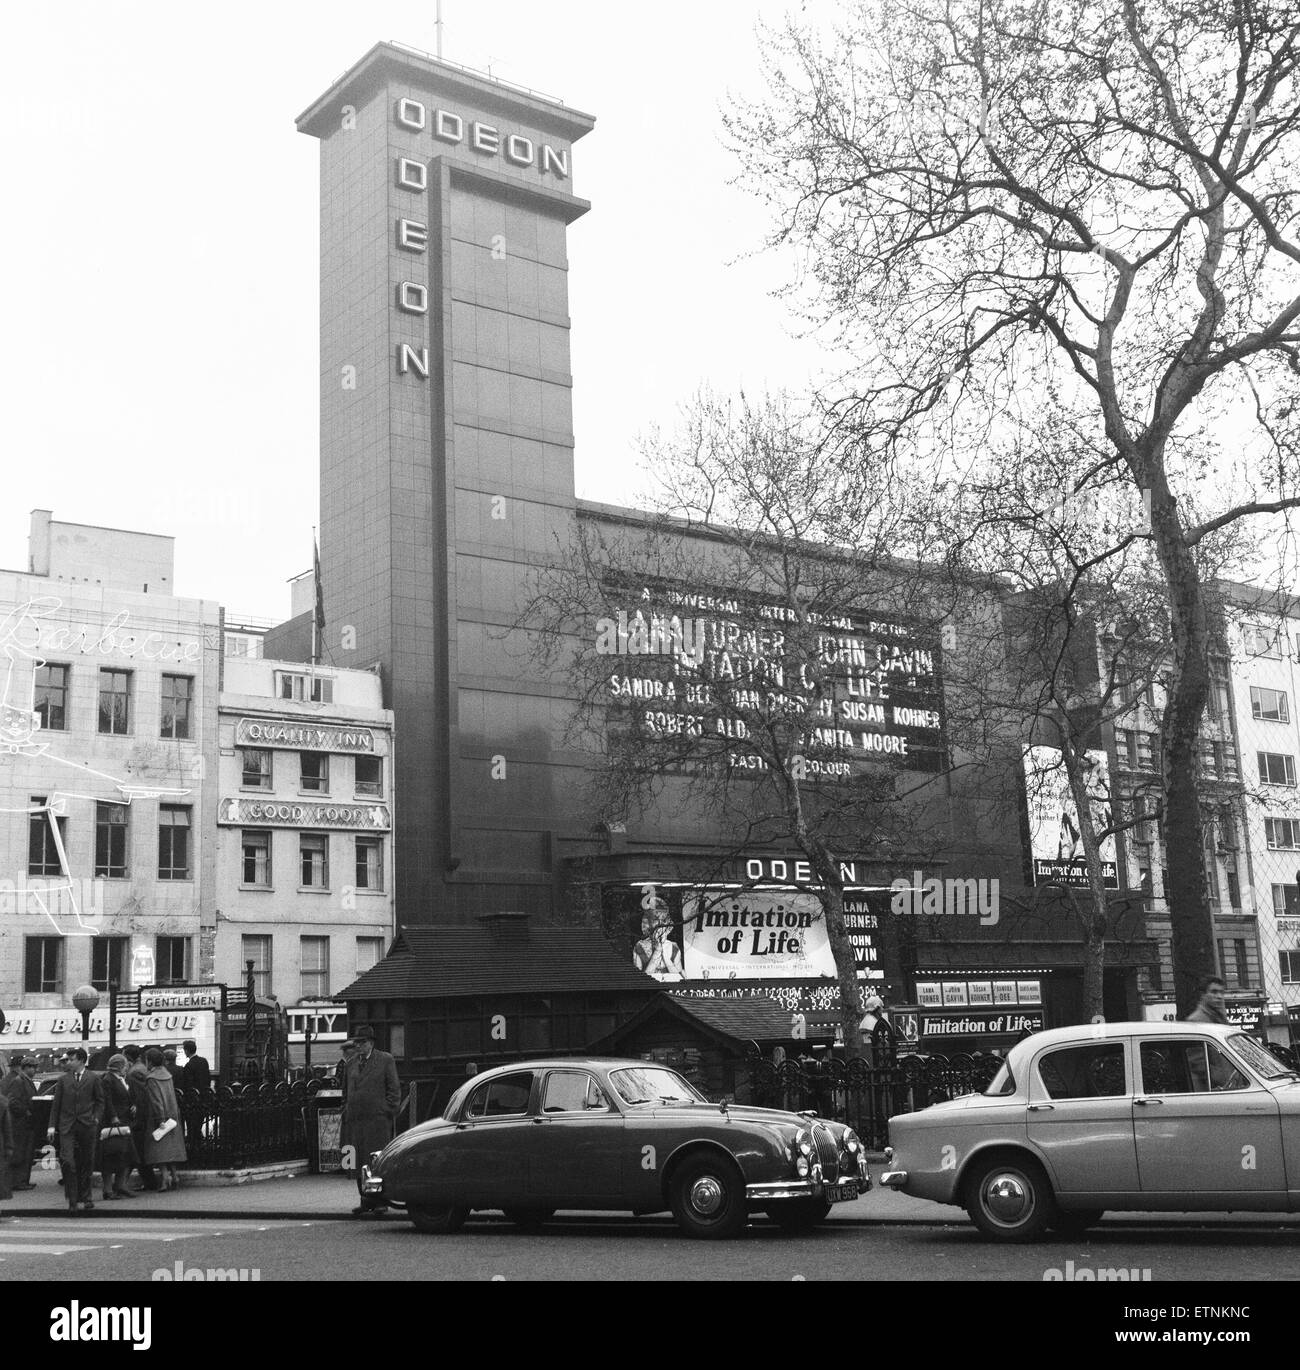 Jaguar S Class seen here parked outside the Odeon, Leicester Square, London.  14th April 1959 - Stock Image